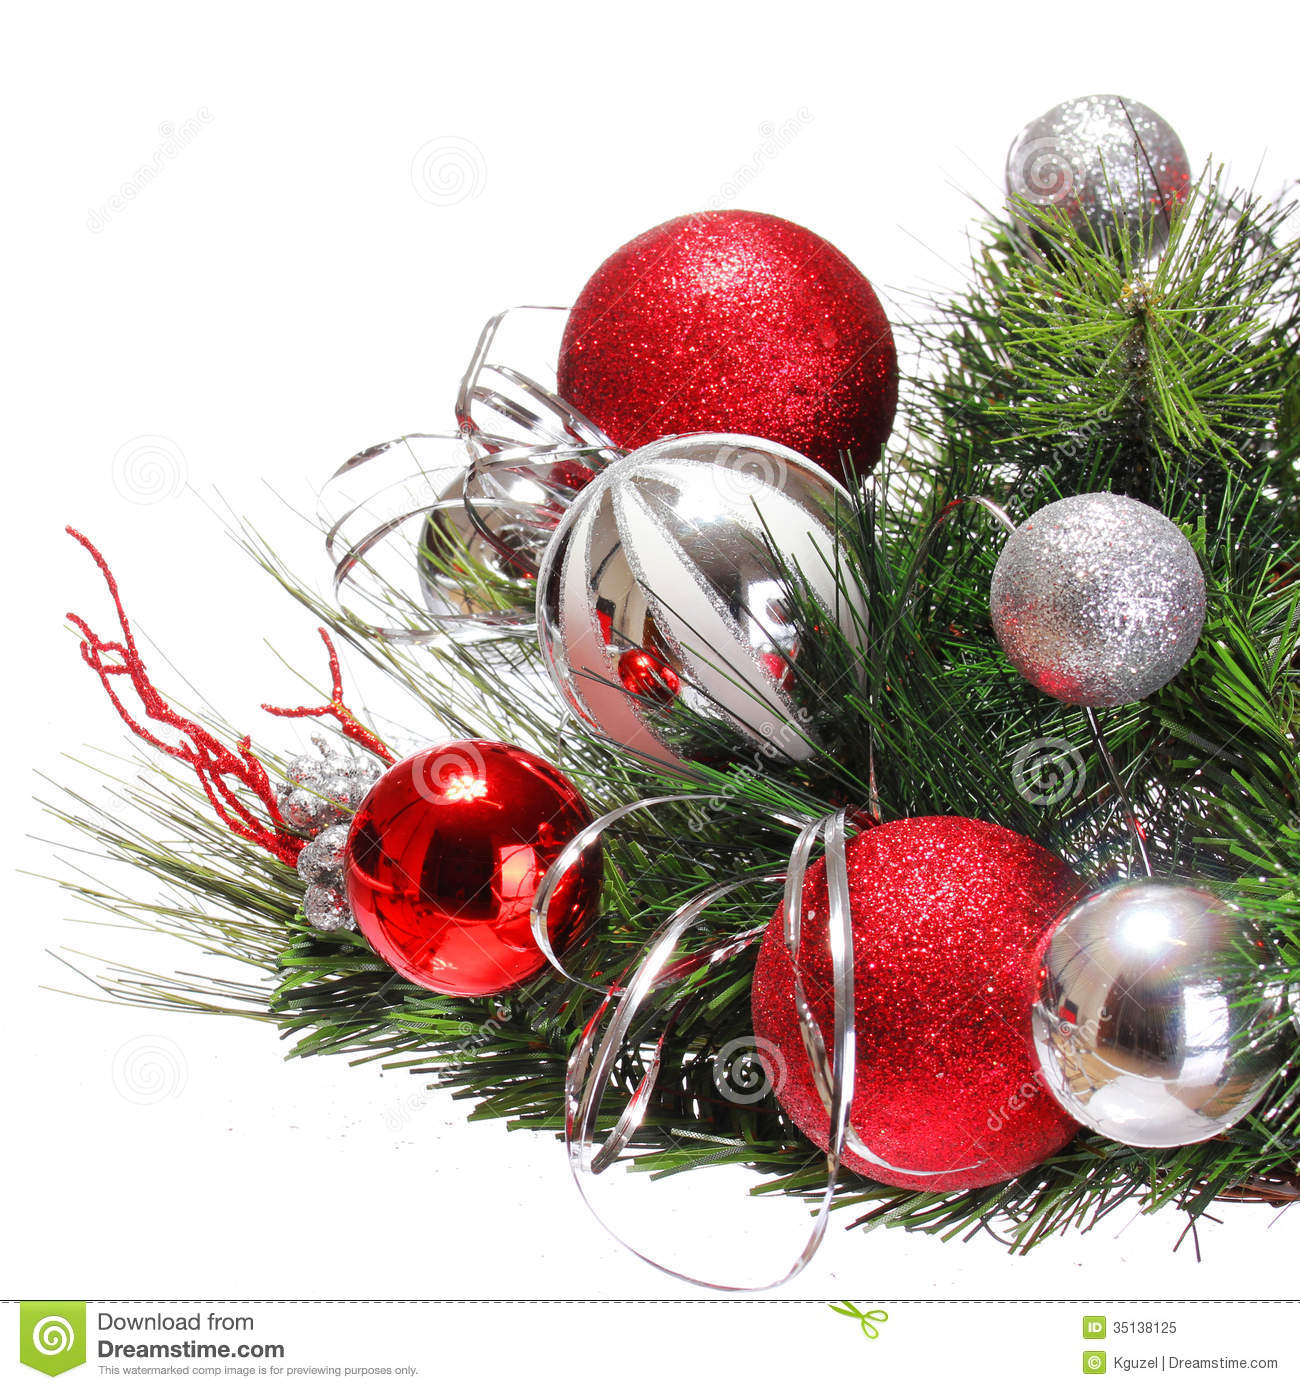 download christmas decoration red and silver balls on christmas tree stock image image of - Red And Silver Christmas Decorations